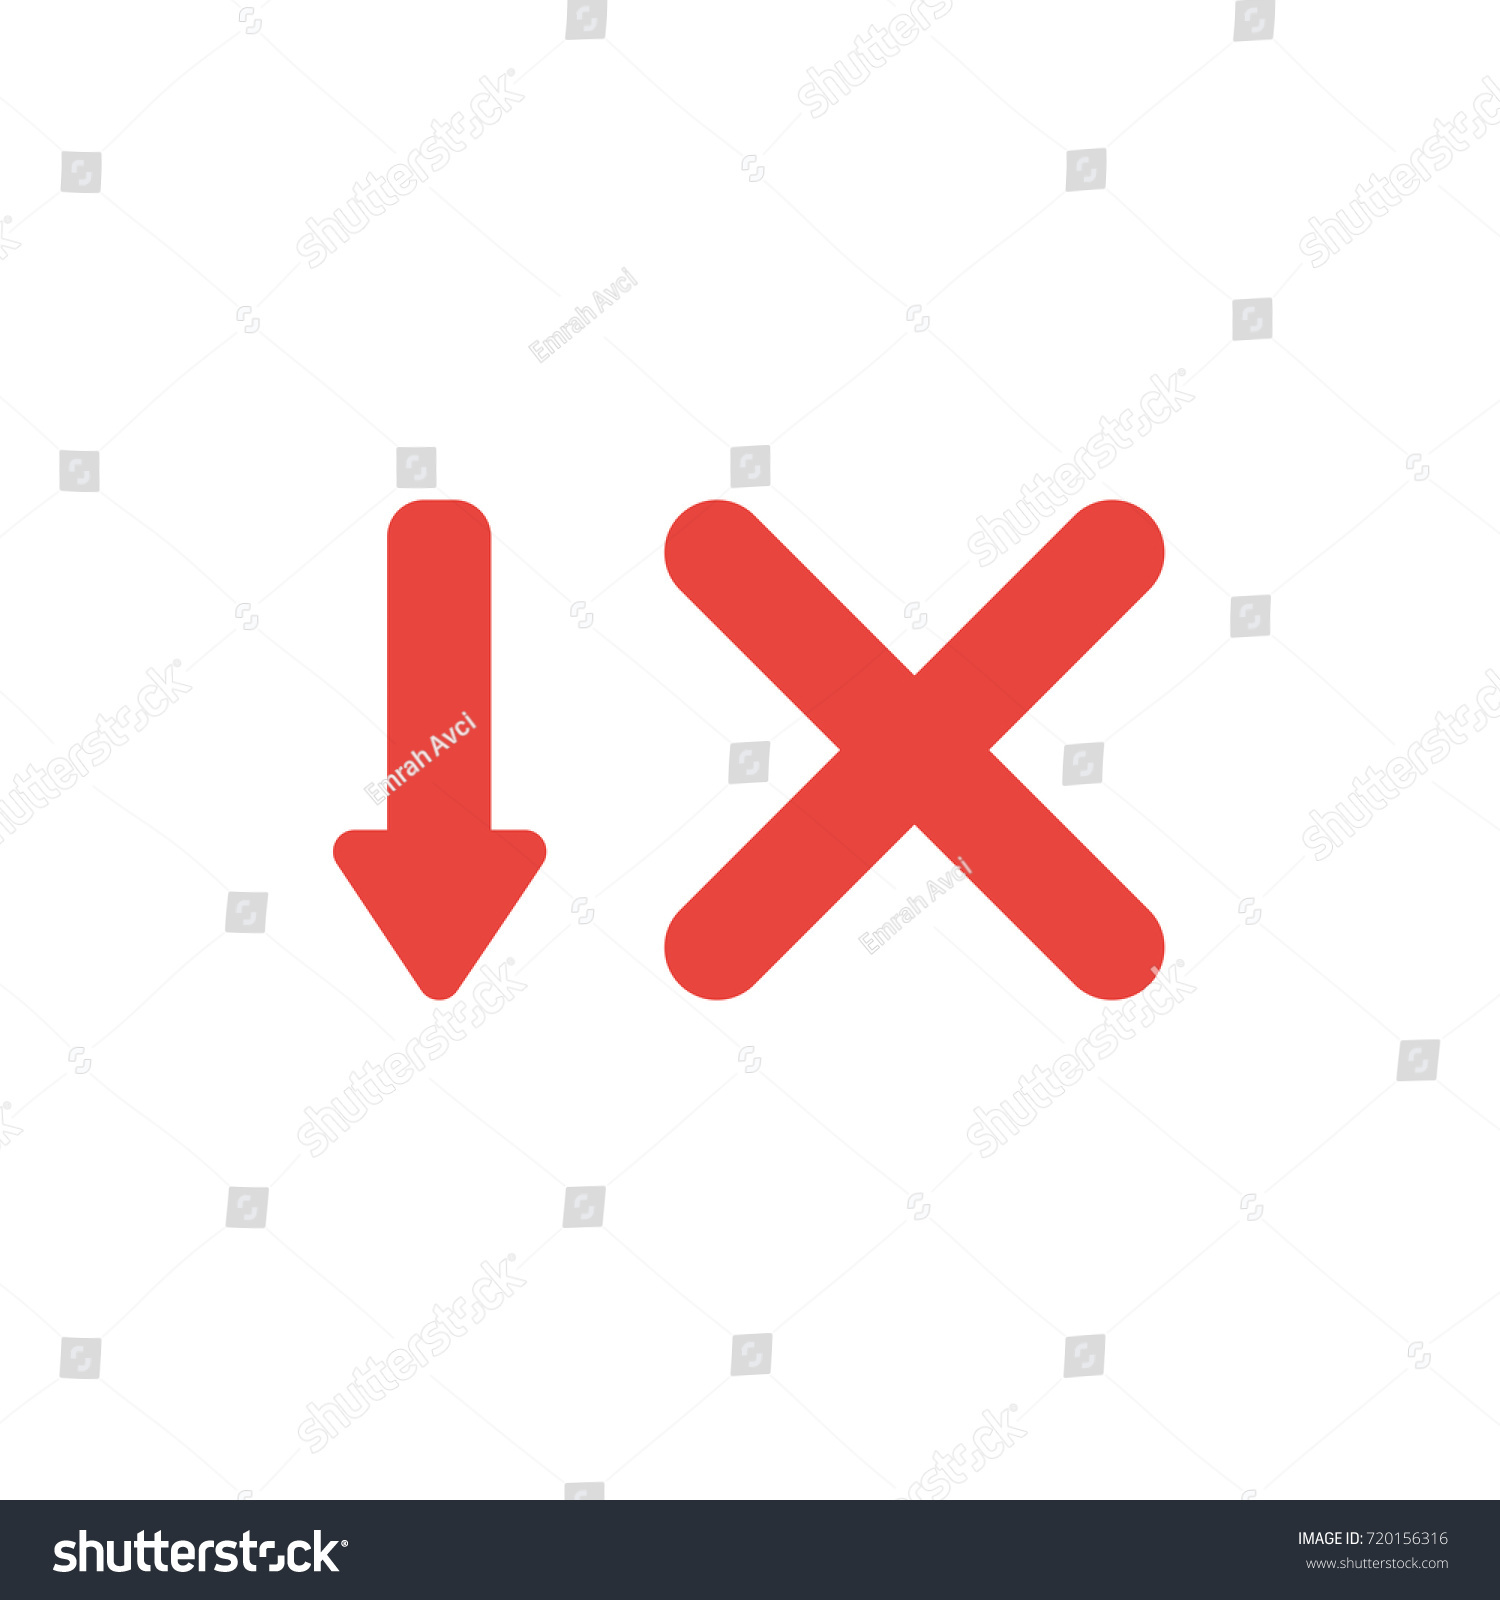 Flat design style vector illustration concept stock vector flat design style vector illustration concept of red arrow pointing down and red x mark symbol buycottarizona